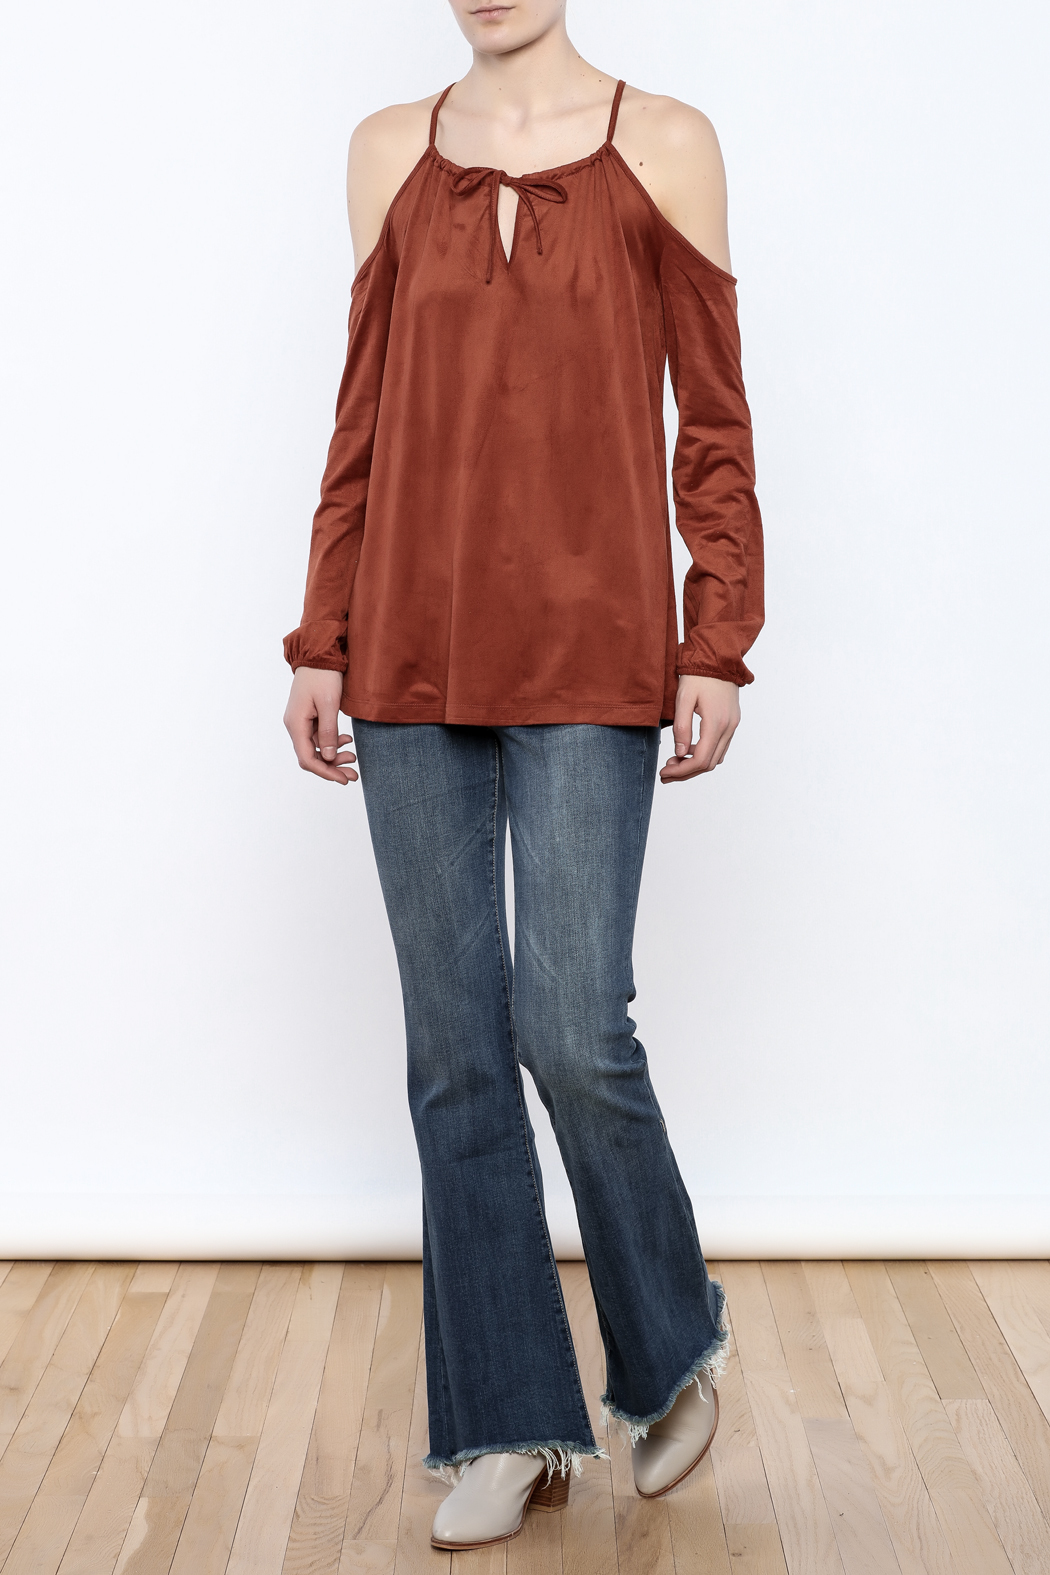 Lumiere Rust Cold Shoulder Top - Front Full Image